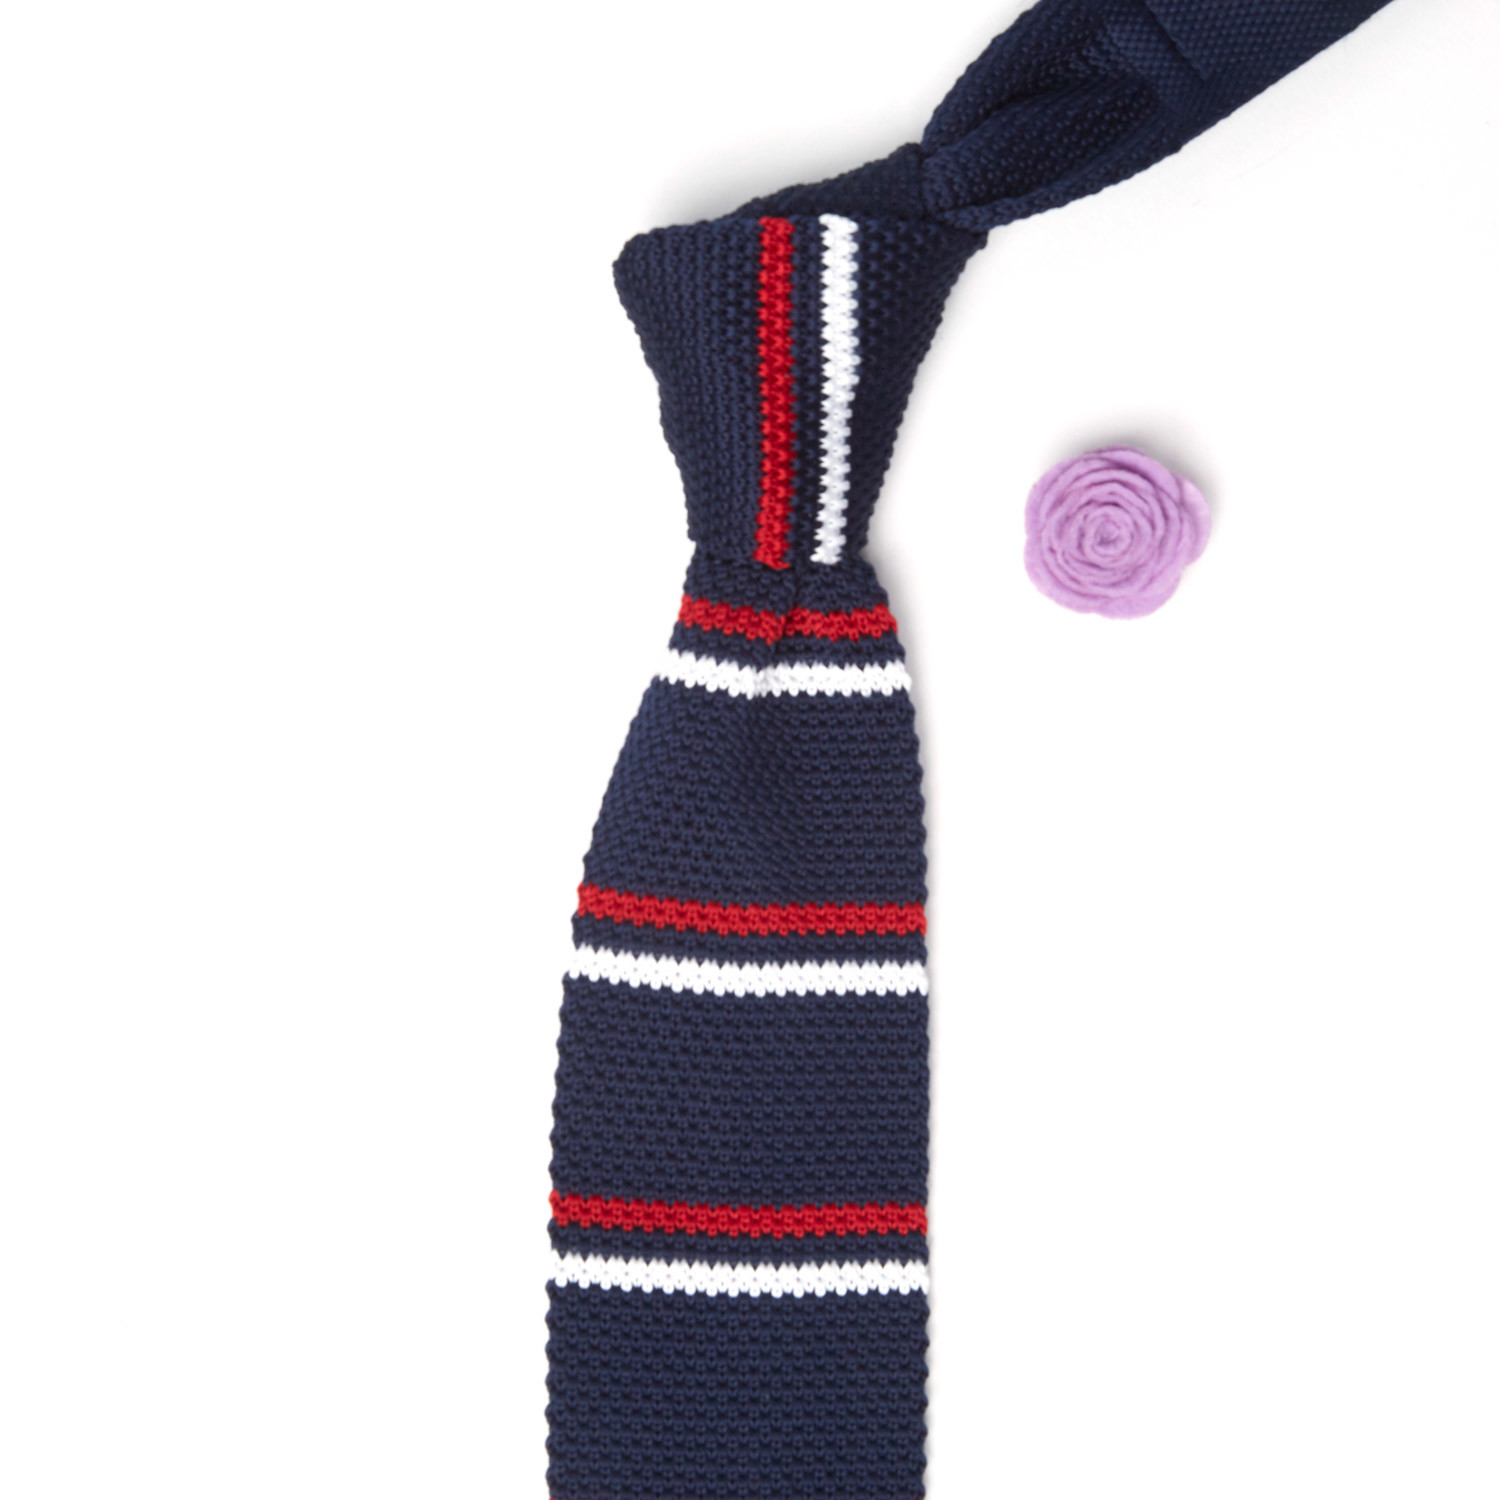 Knit Tie Lapel Flower Navy Red White Stripes Pink Lapel